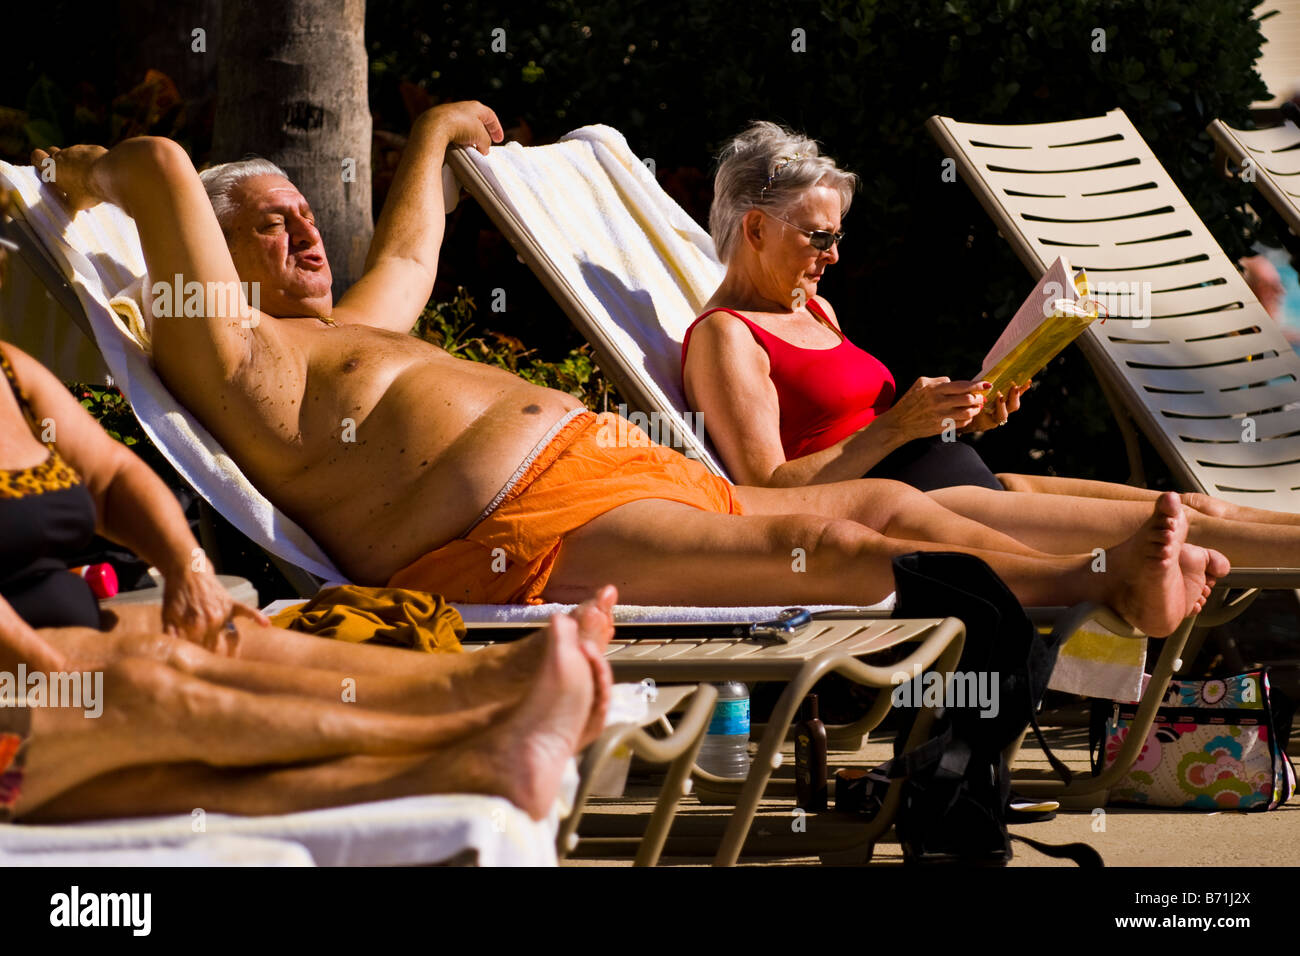 Palm Beach Shores Mature Large Middle Aged Grey Haired Man On Sun Lounger In Orange